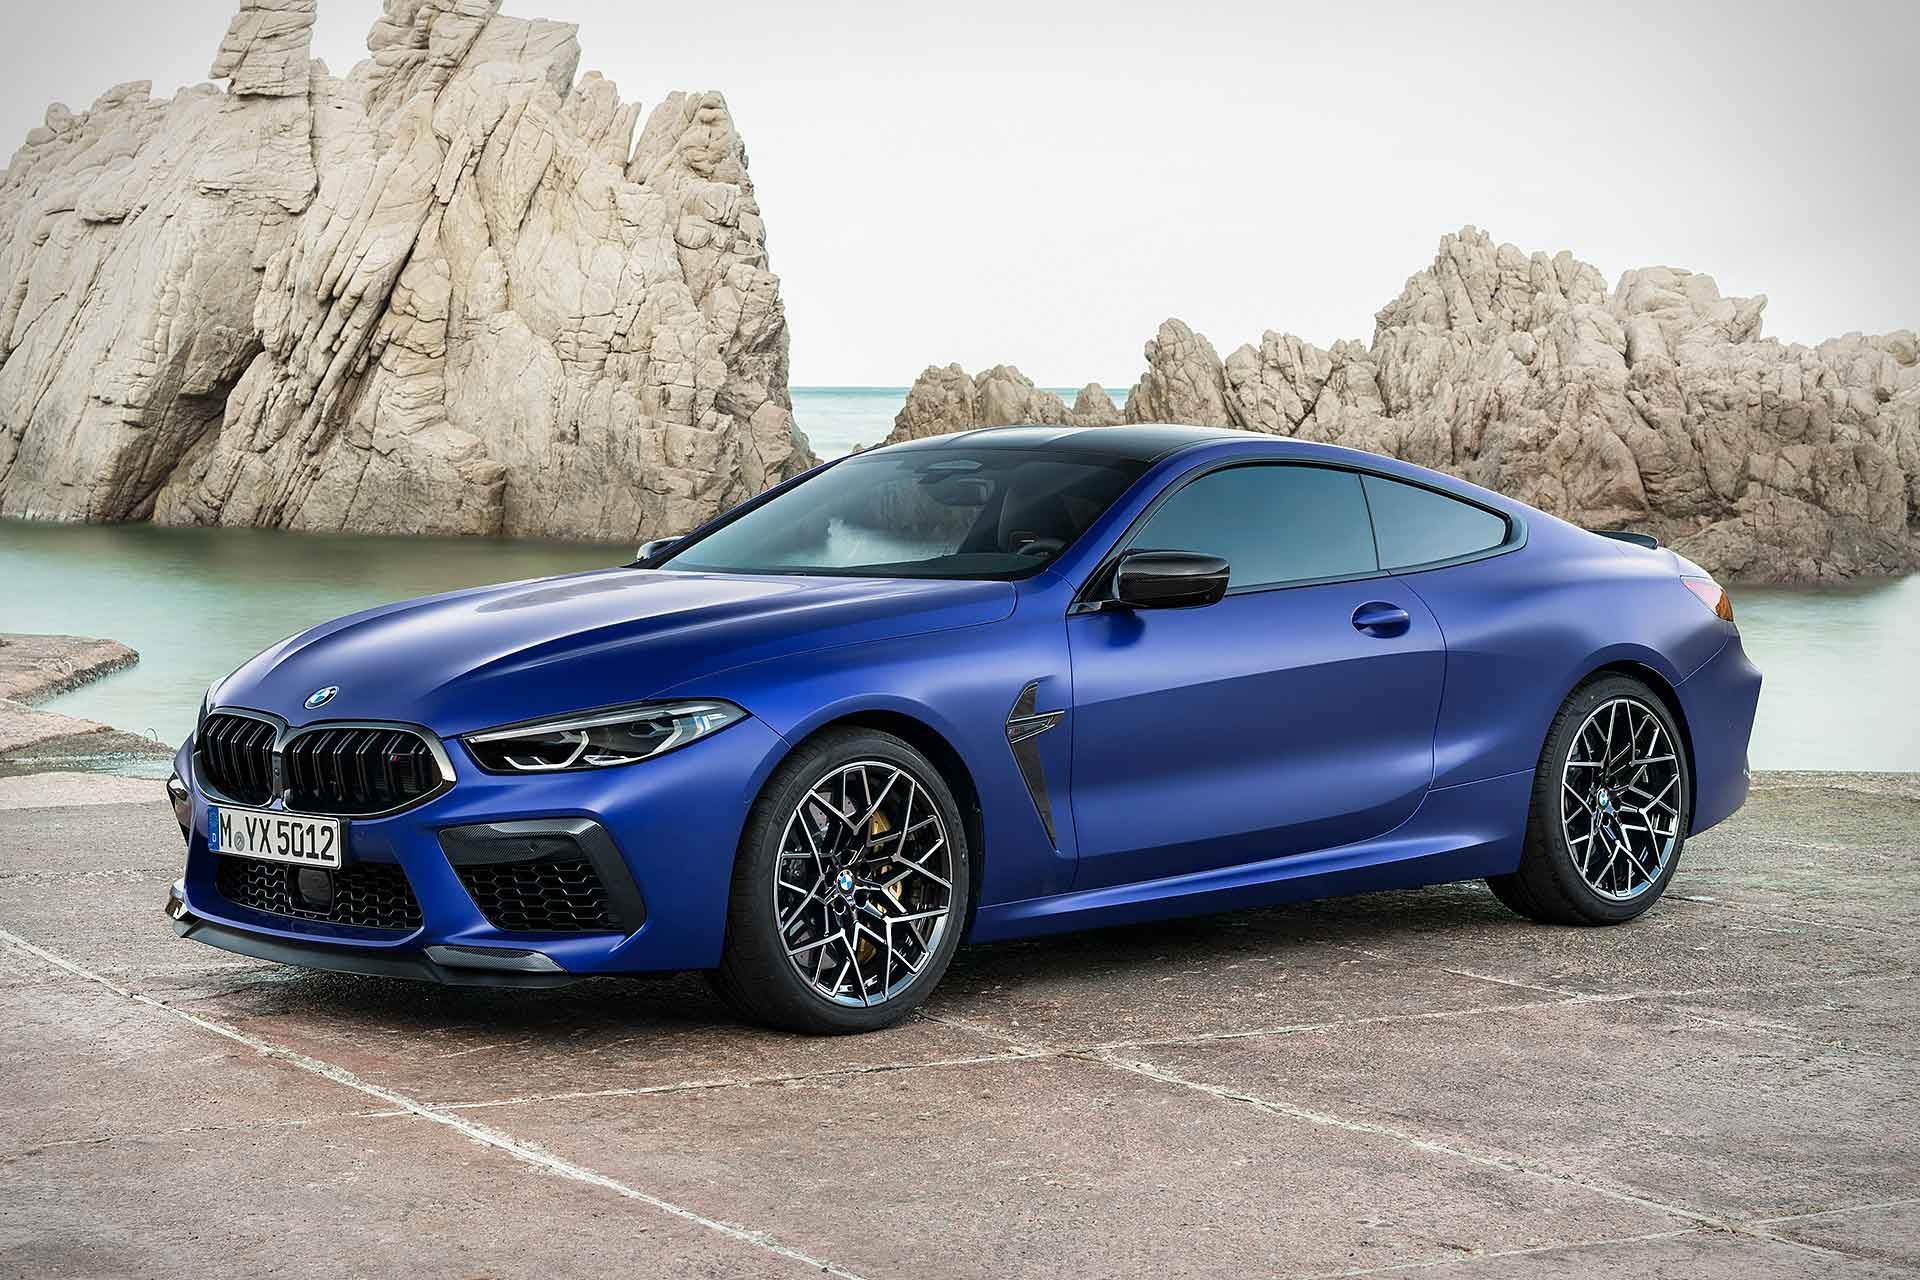 2020 Bmw M8 Coupe Convertible With Images Bmw Coupe